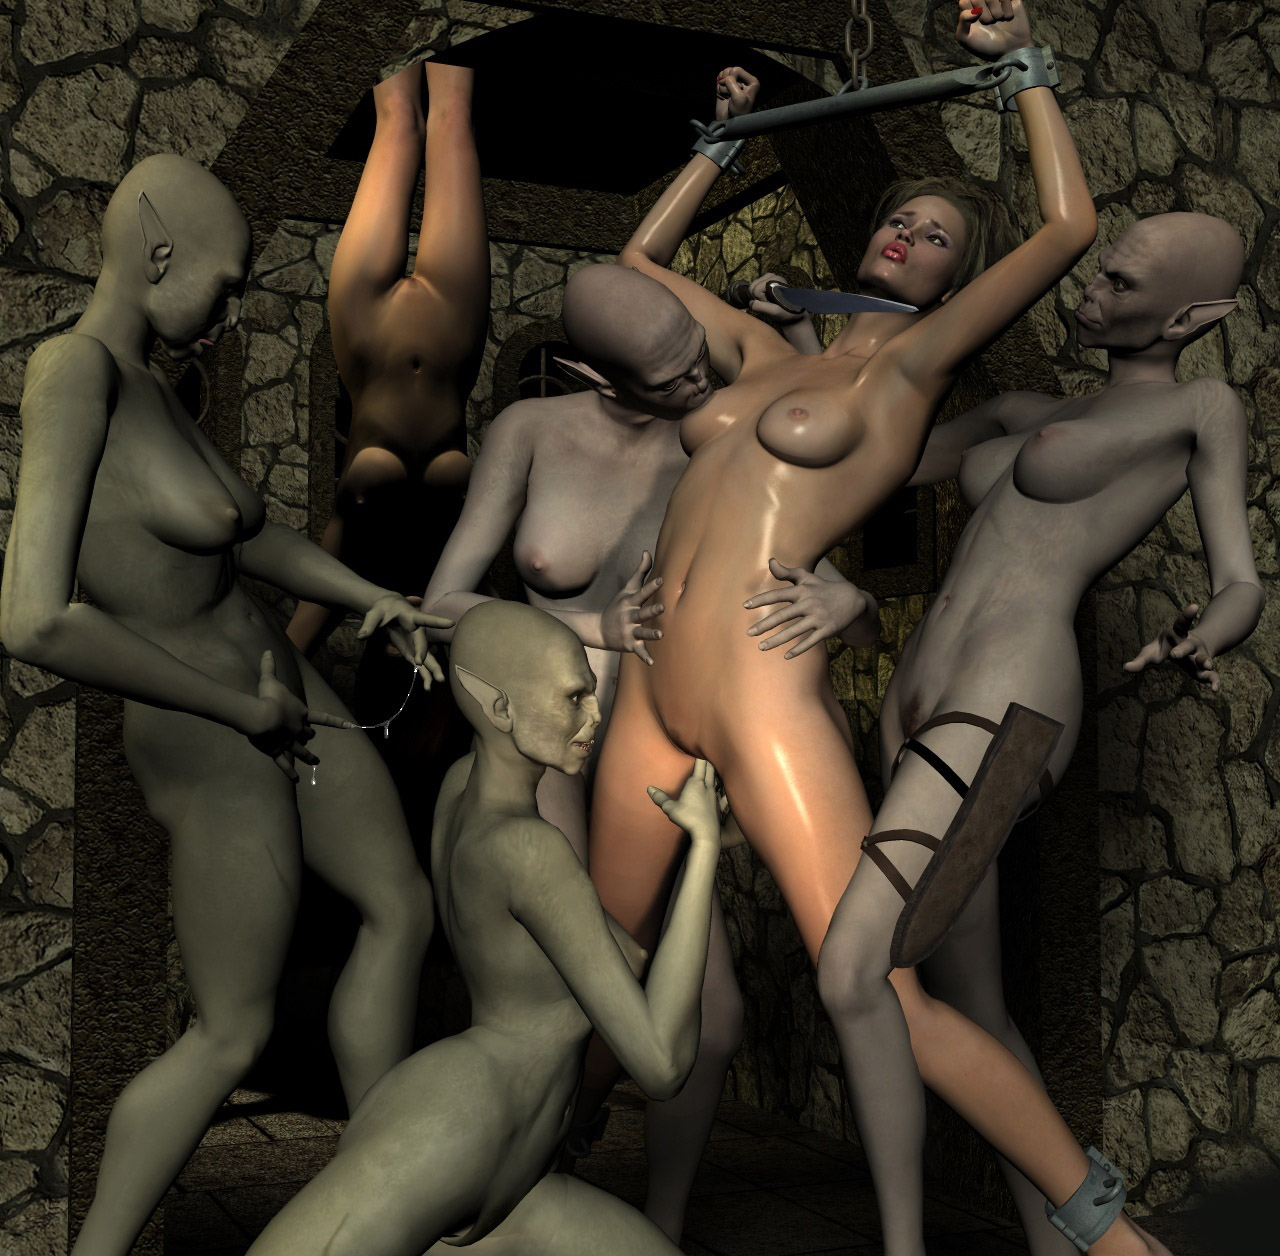 Lara croft hot lesbian monsters fucked exploited pictures